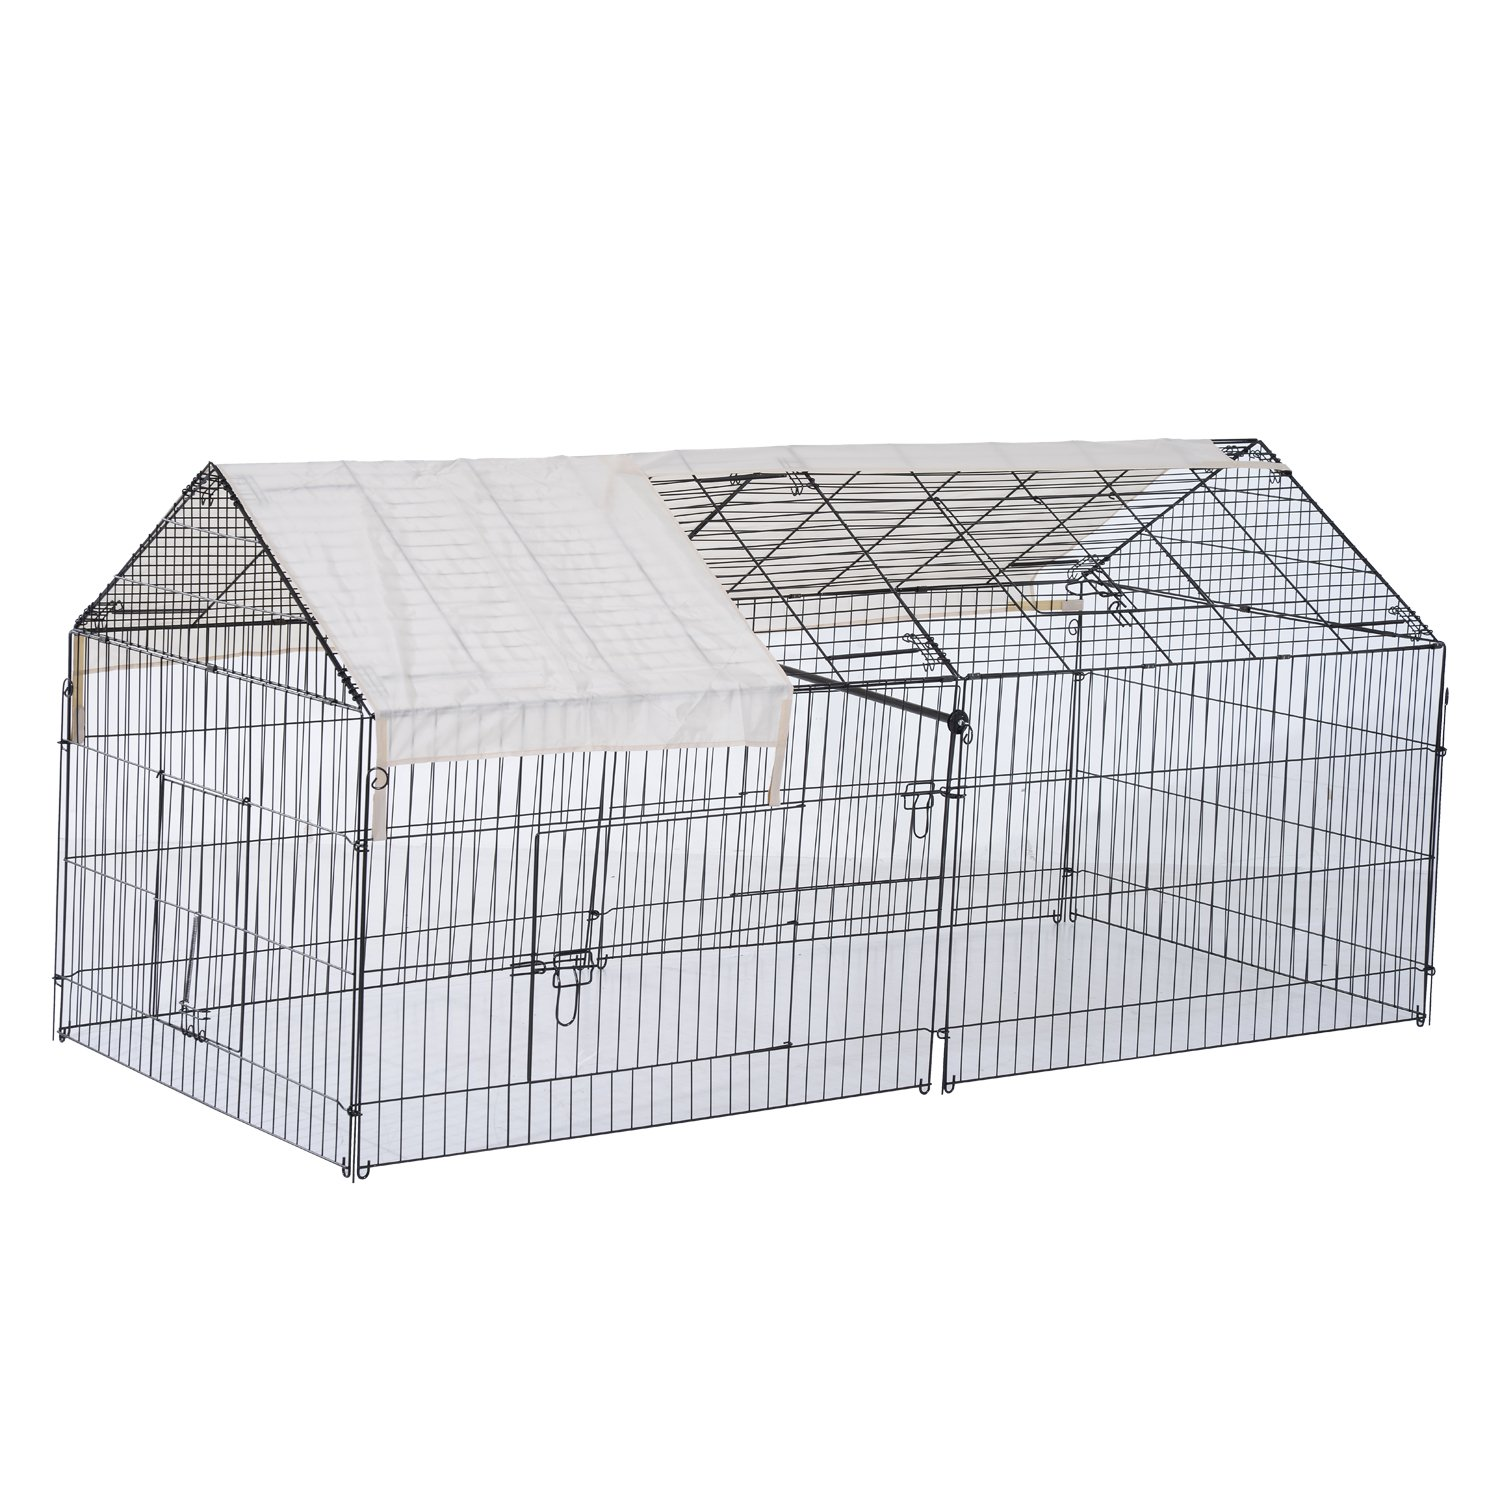 """PawHut 88"""" Metal Outdoor Small Animal Enclosure with Protective Cover - Black/White"""